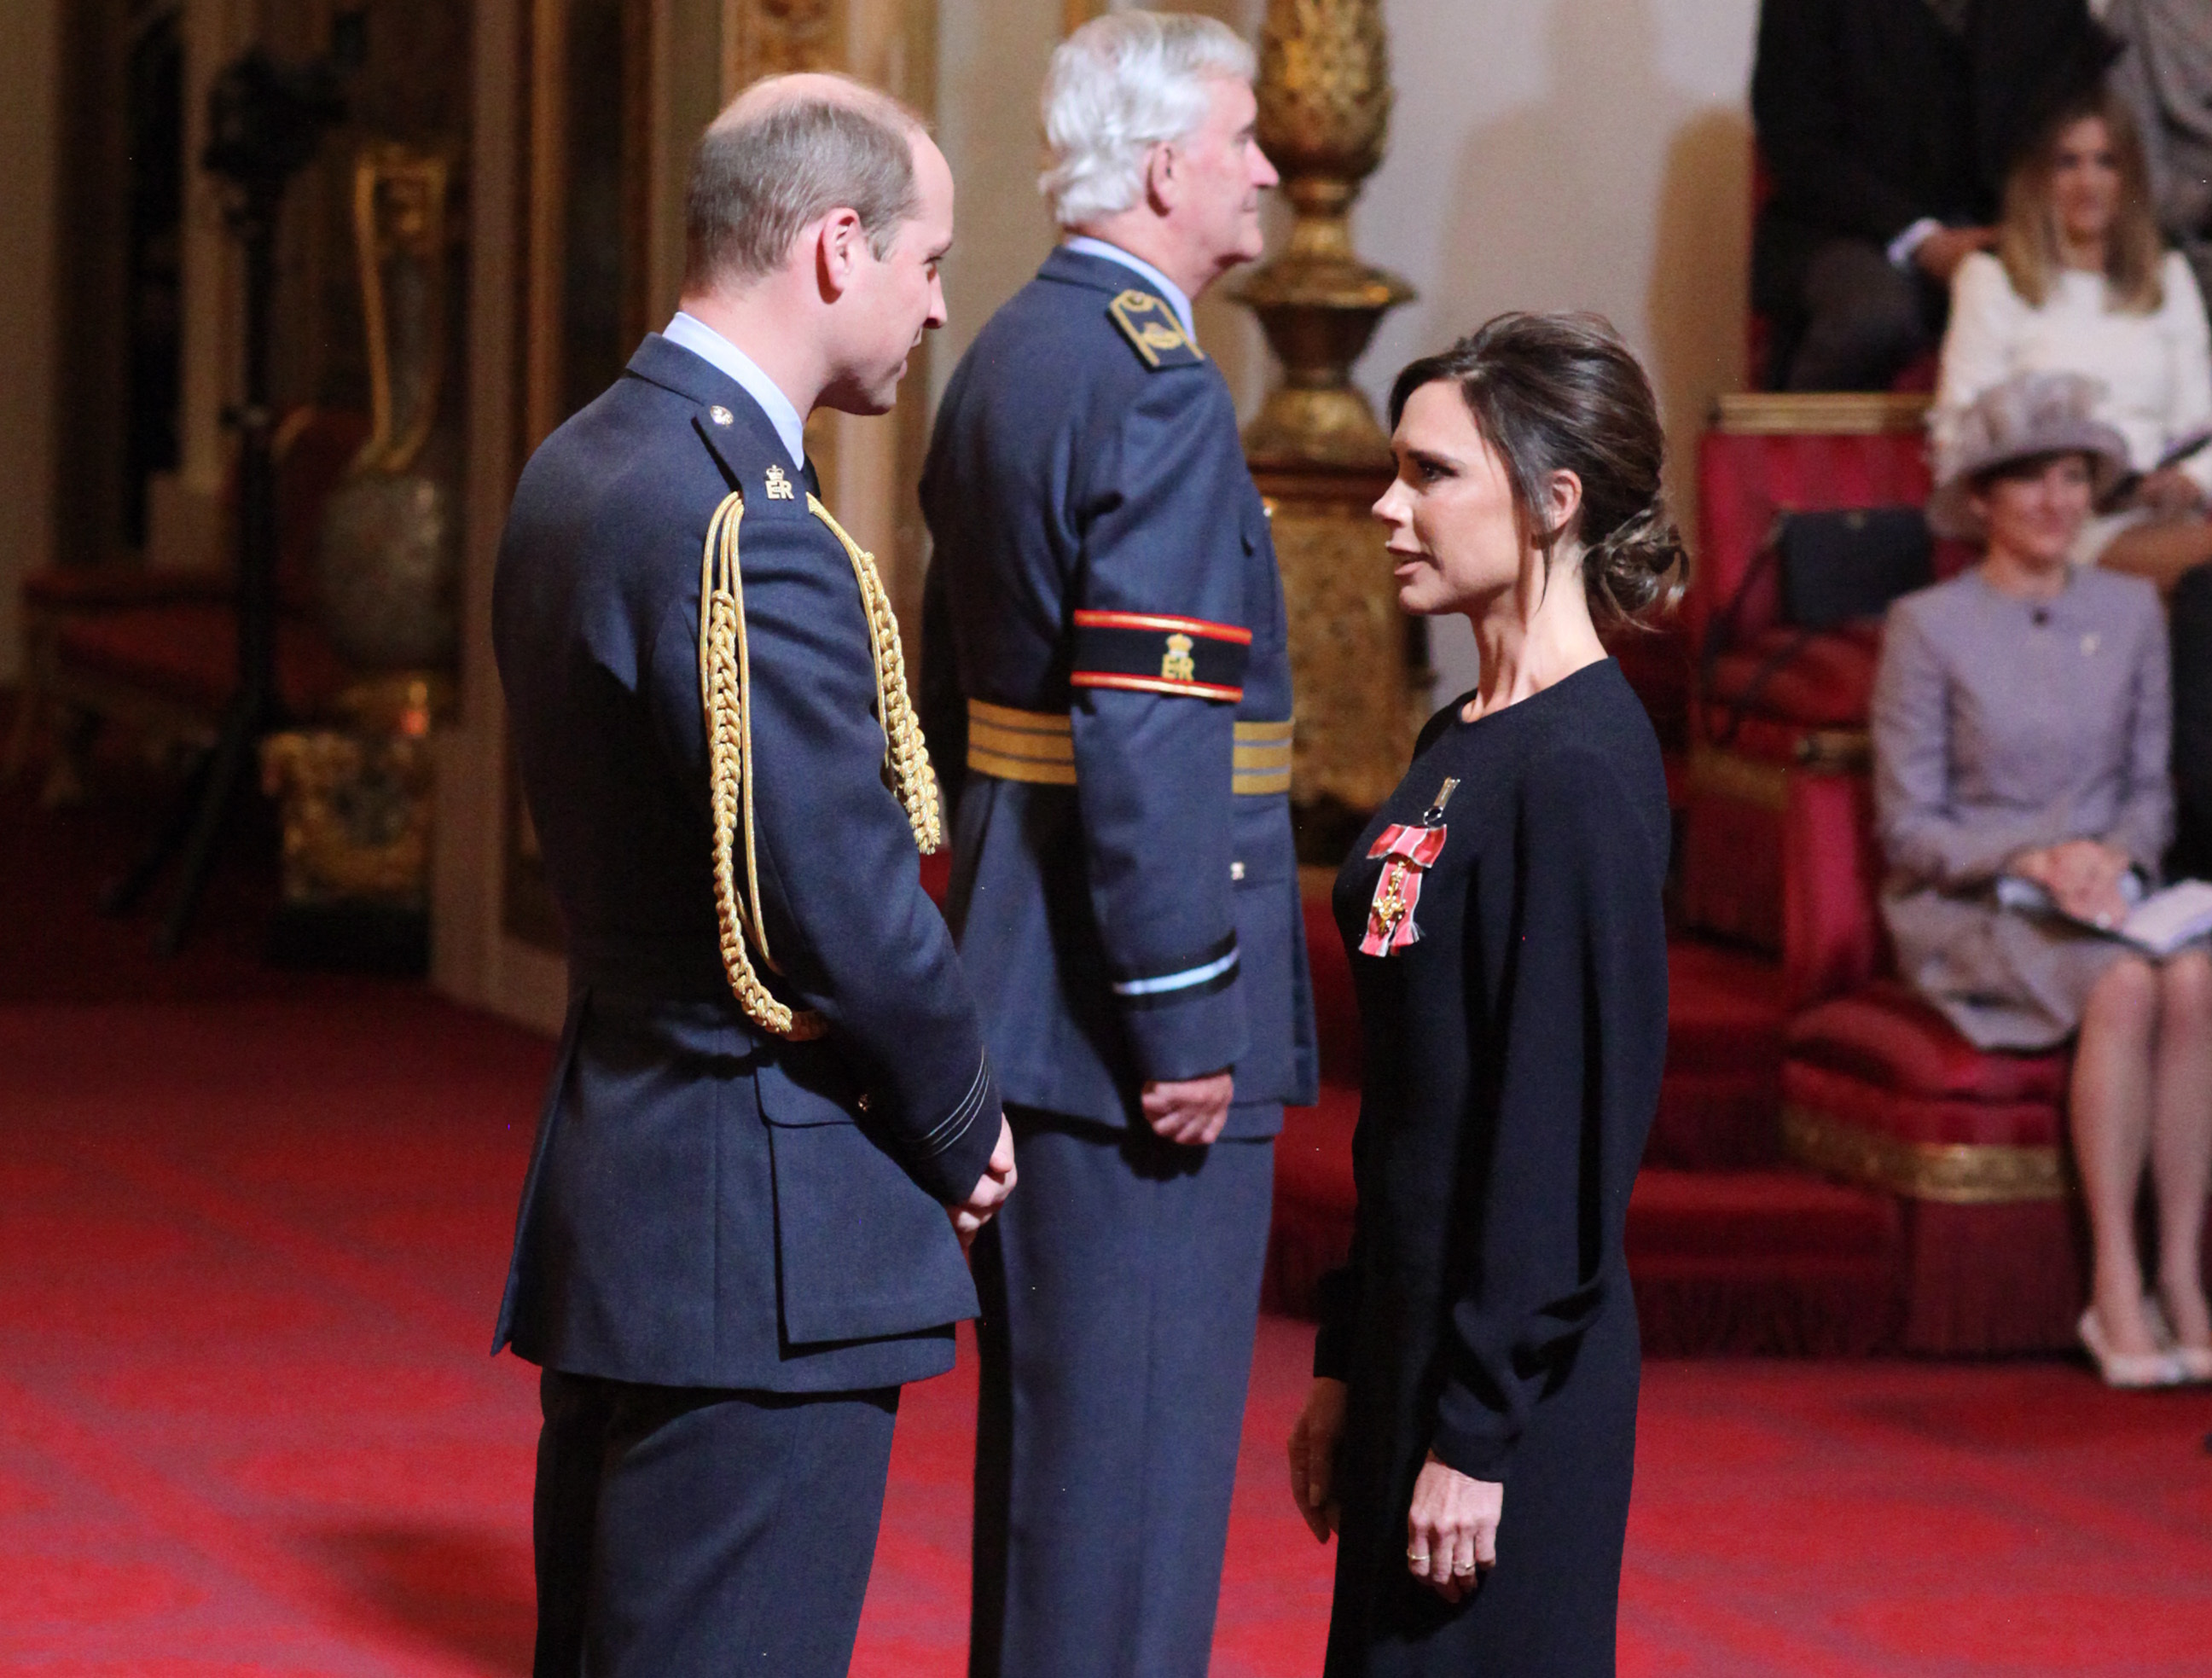 Victoria Beckham receives her OBE from the Duke of Cambridge during an investiture ceremony at Buckingham Palace in London.